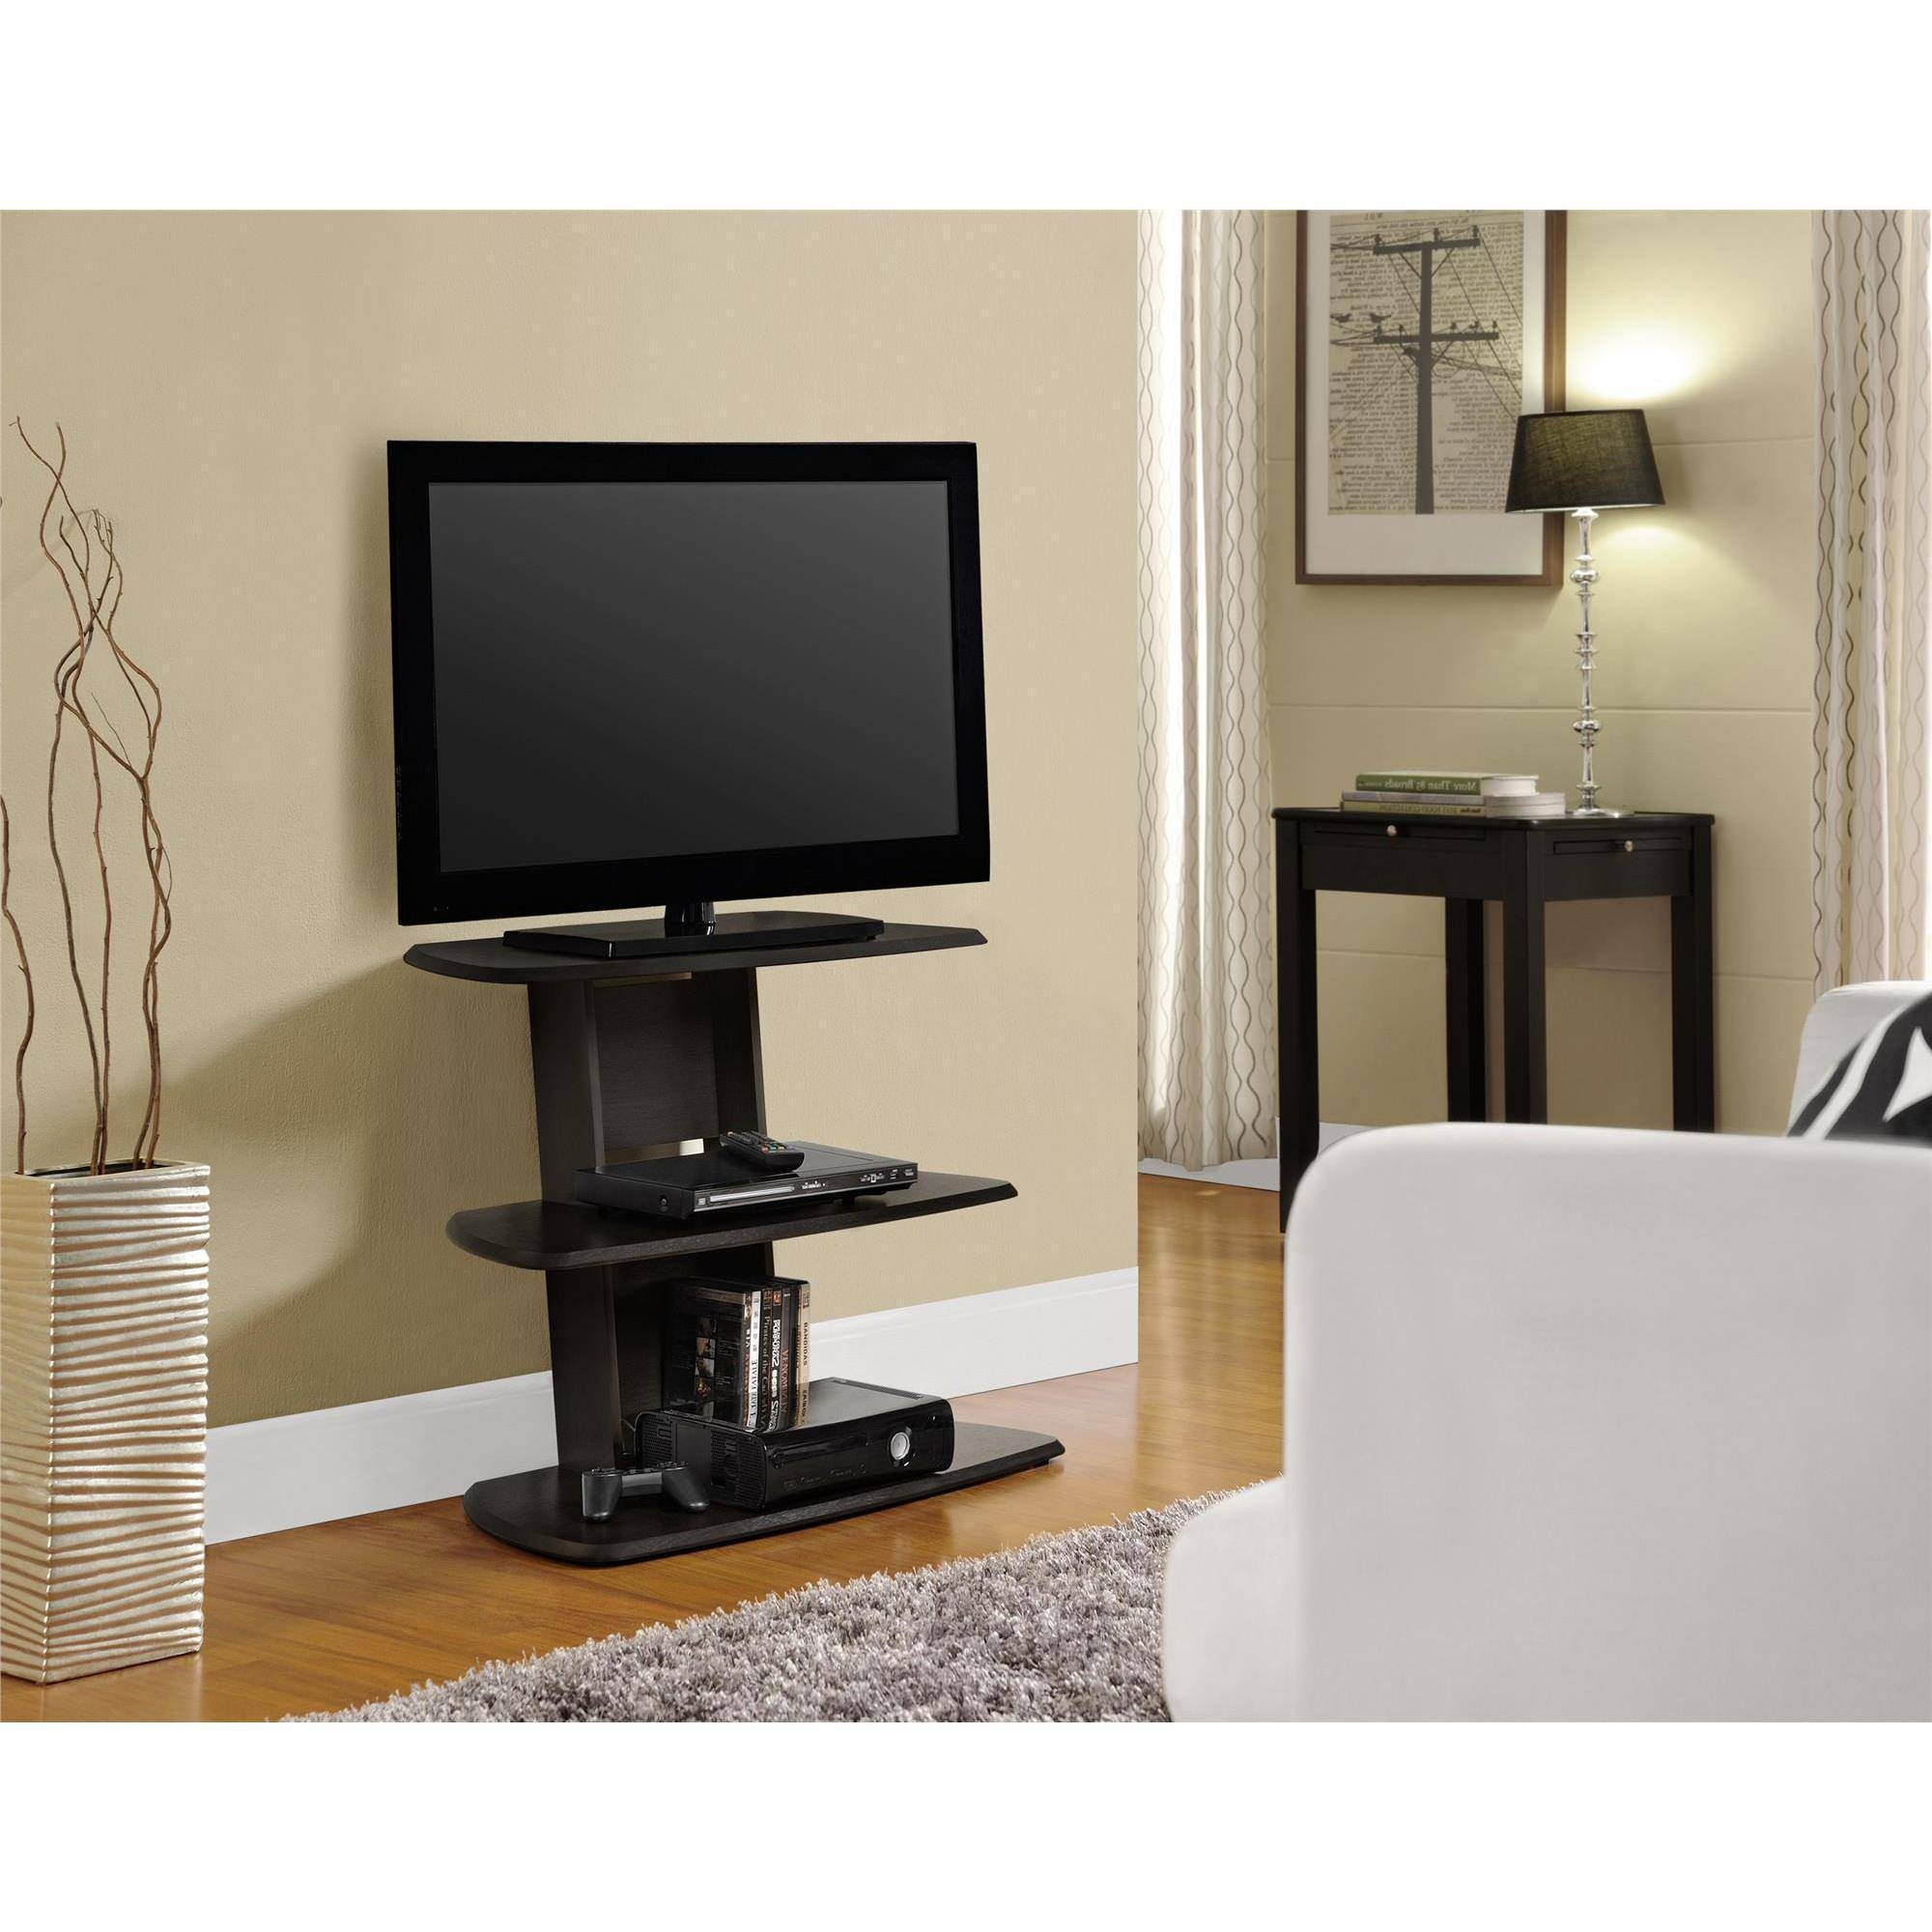 Amazing Expresso Tv Stand 34 For Your Home Designing Inspiration regarding 24 Inch Corner Tv Stands (Image 1 of 15)